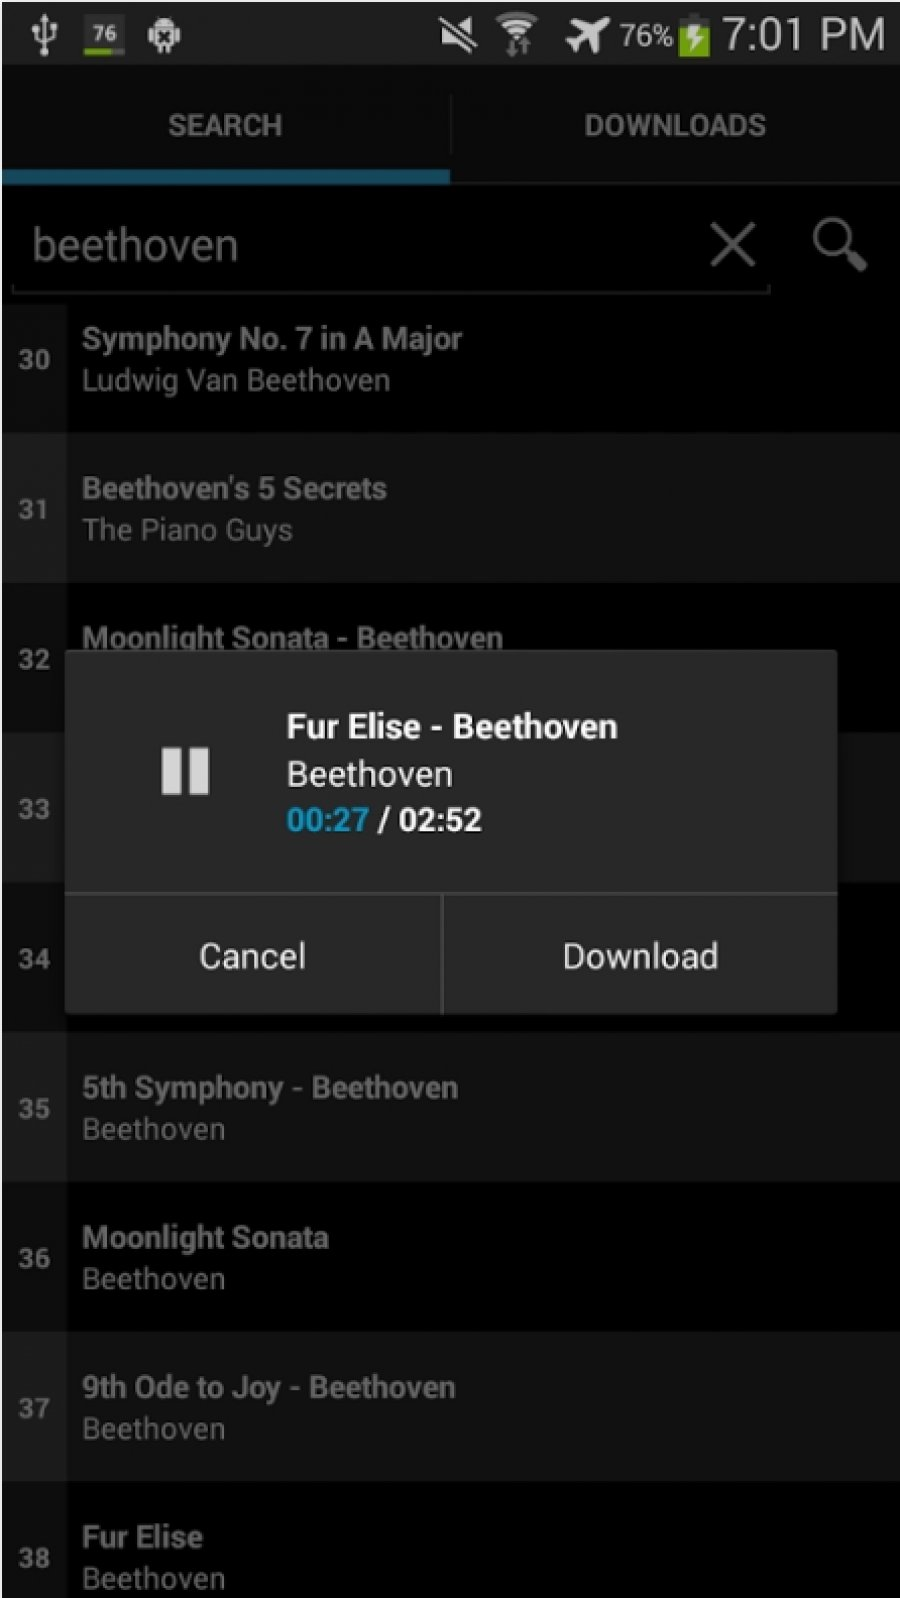 SuperCloud Song MP3 Downloader (APK) - Free Download